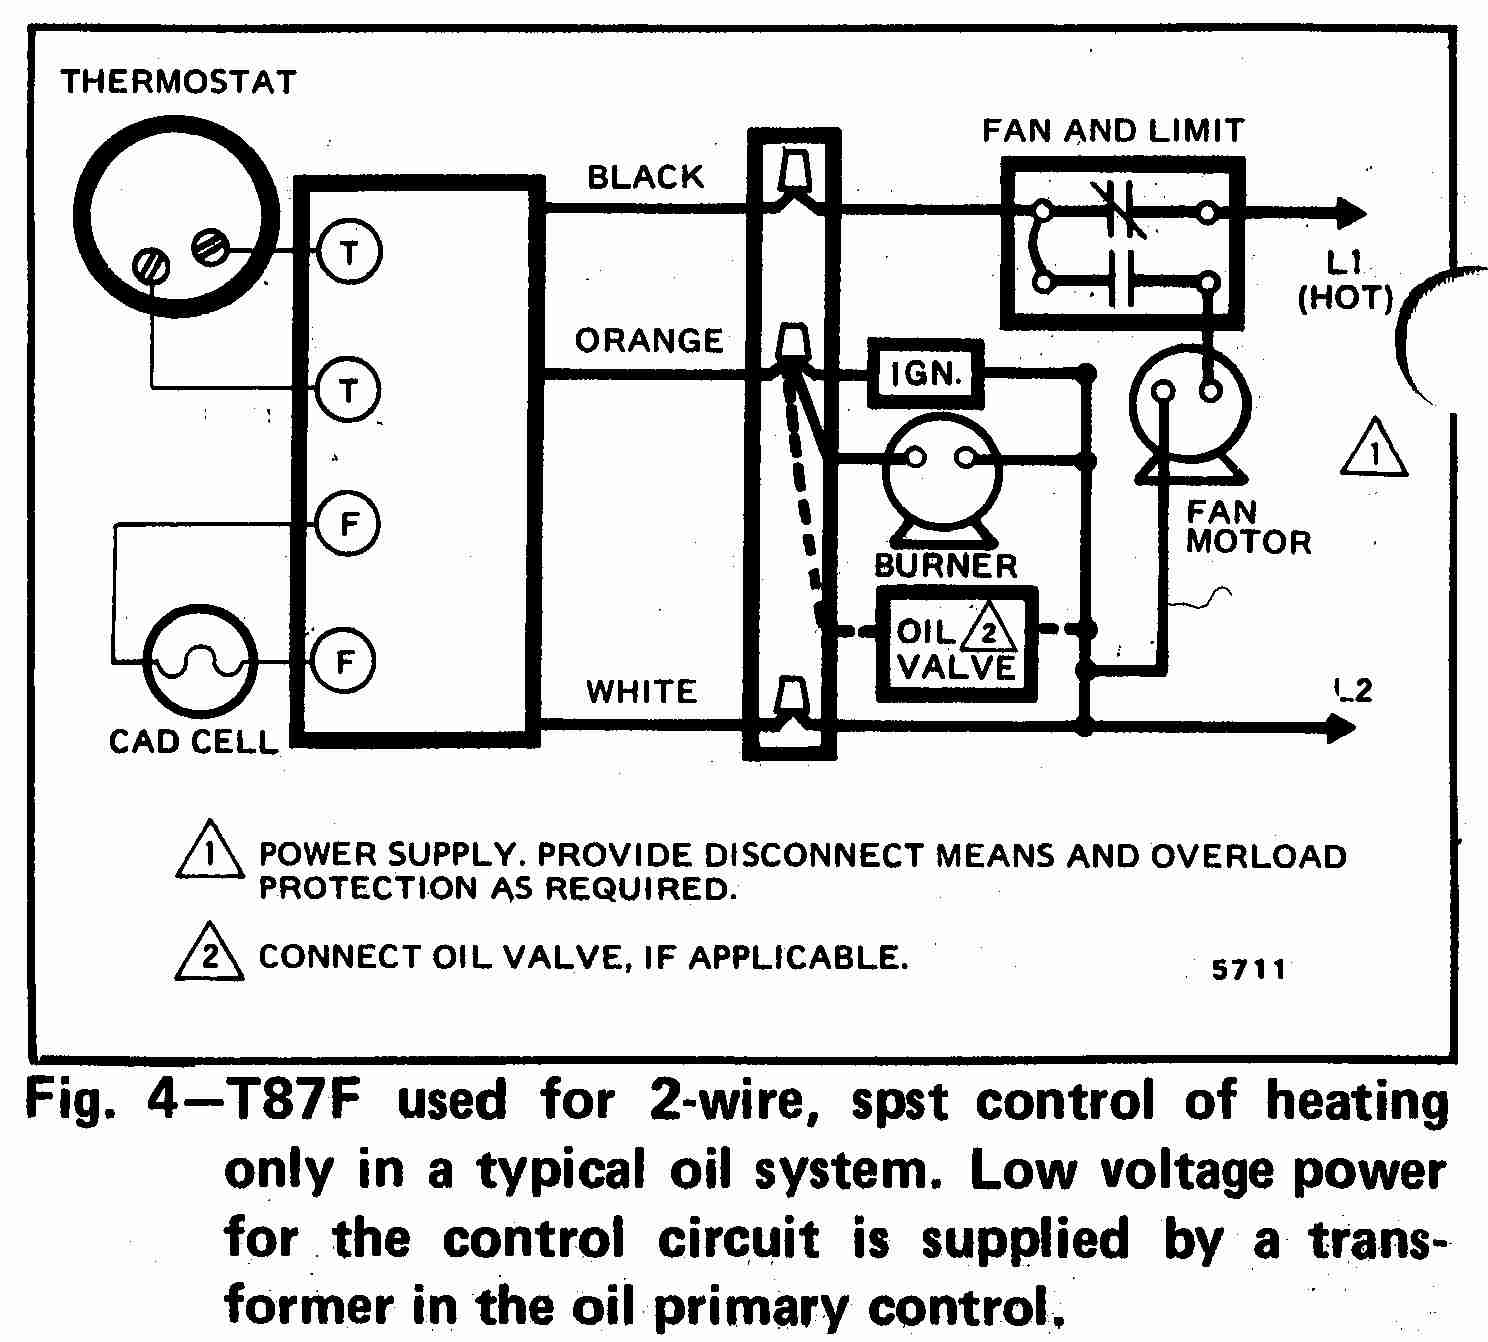 TT_T87F_0002_2W_DJF room thermostat wiring diagrams for hvac systems gas heater wiring diagram at n-0.co